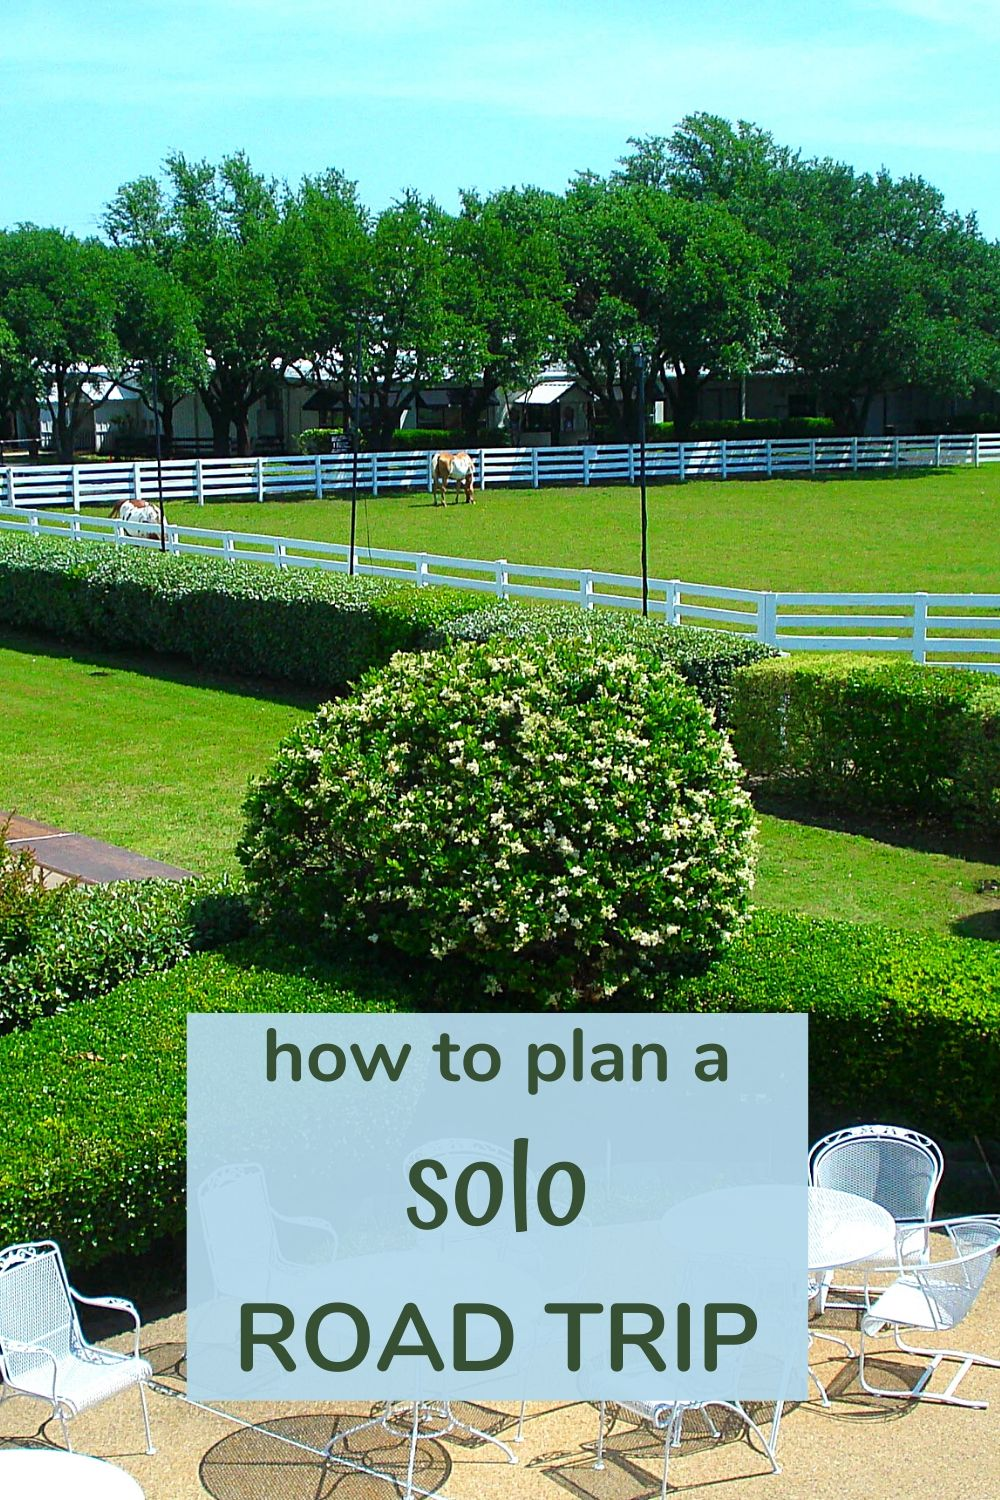 How to Plan a Solo Road Trip